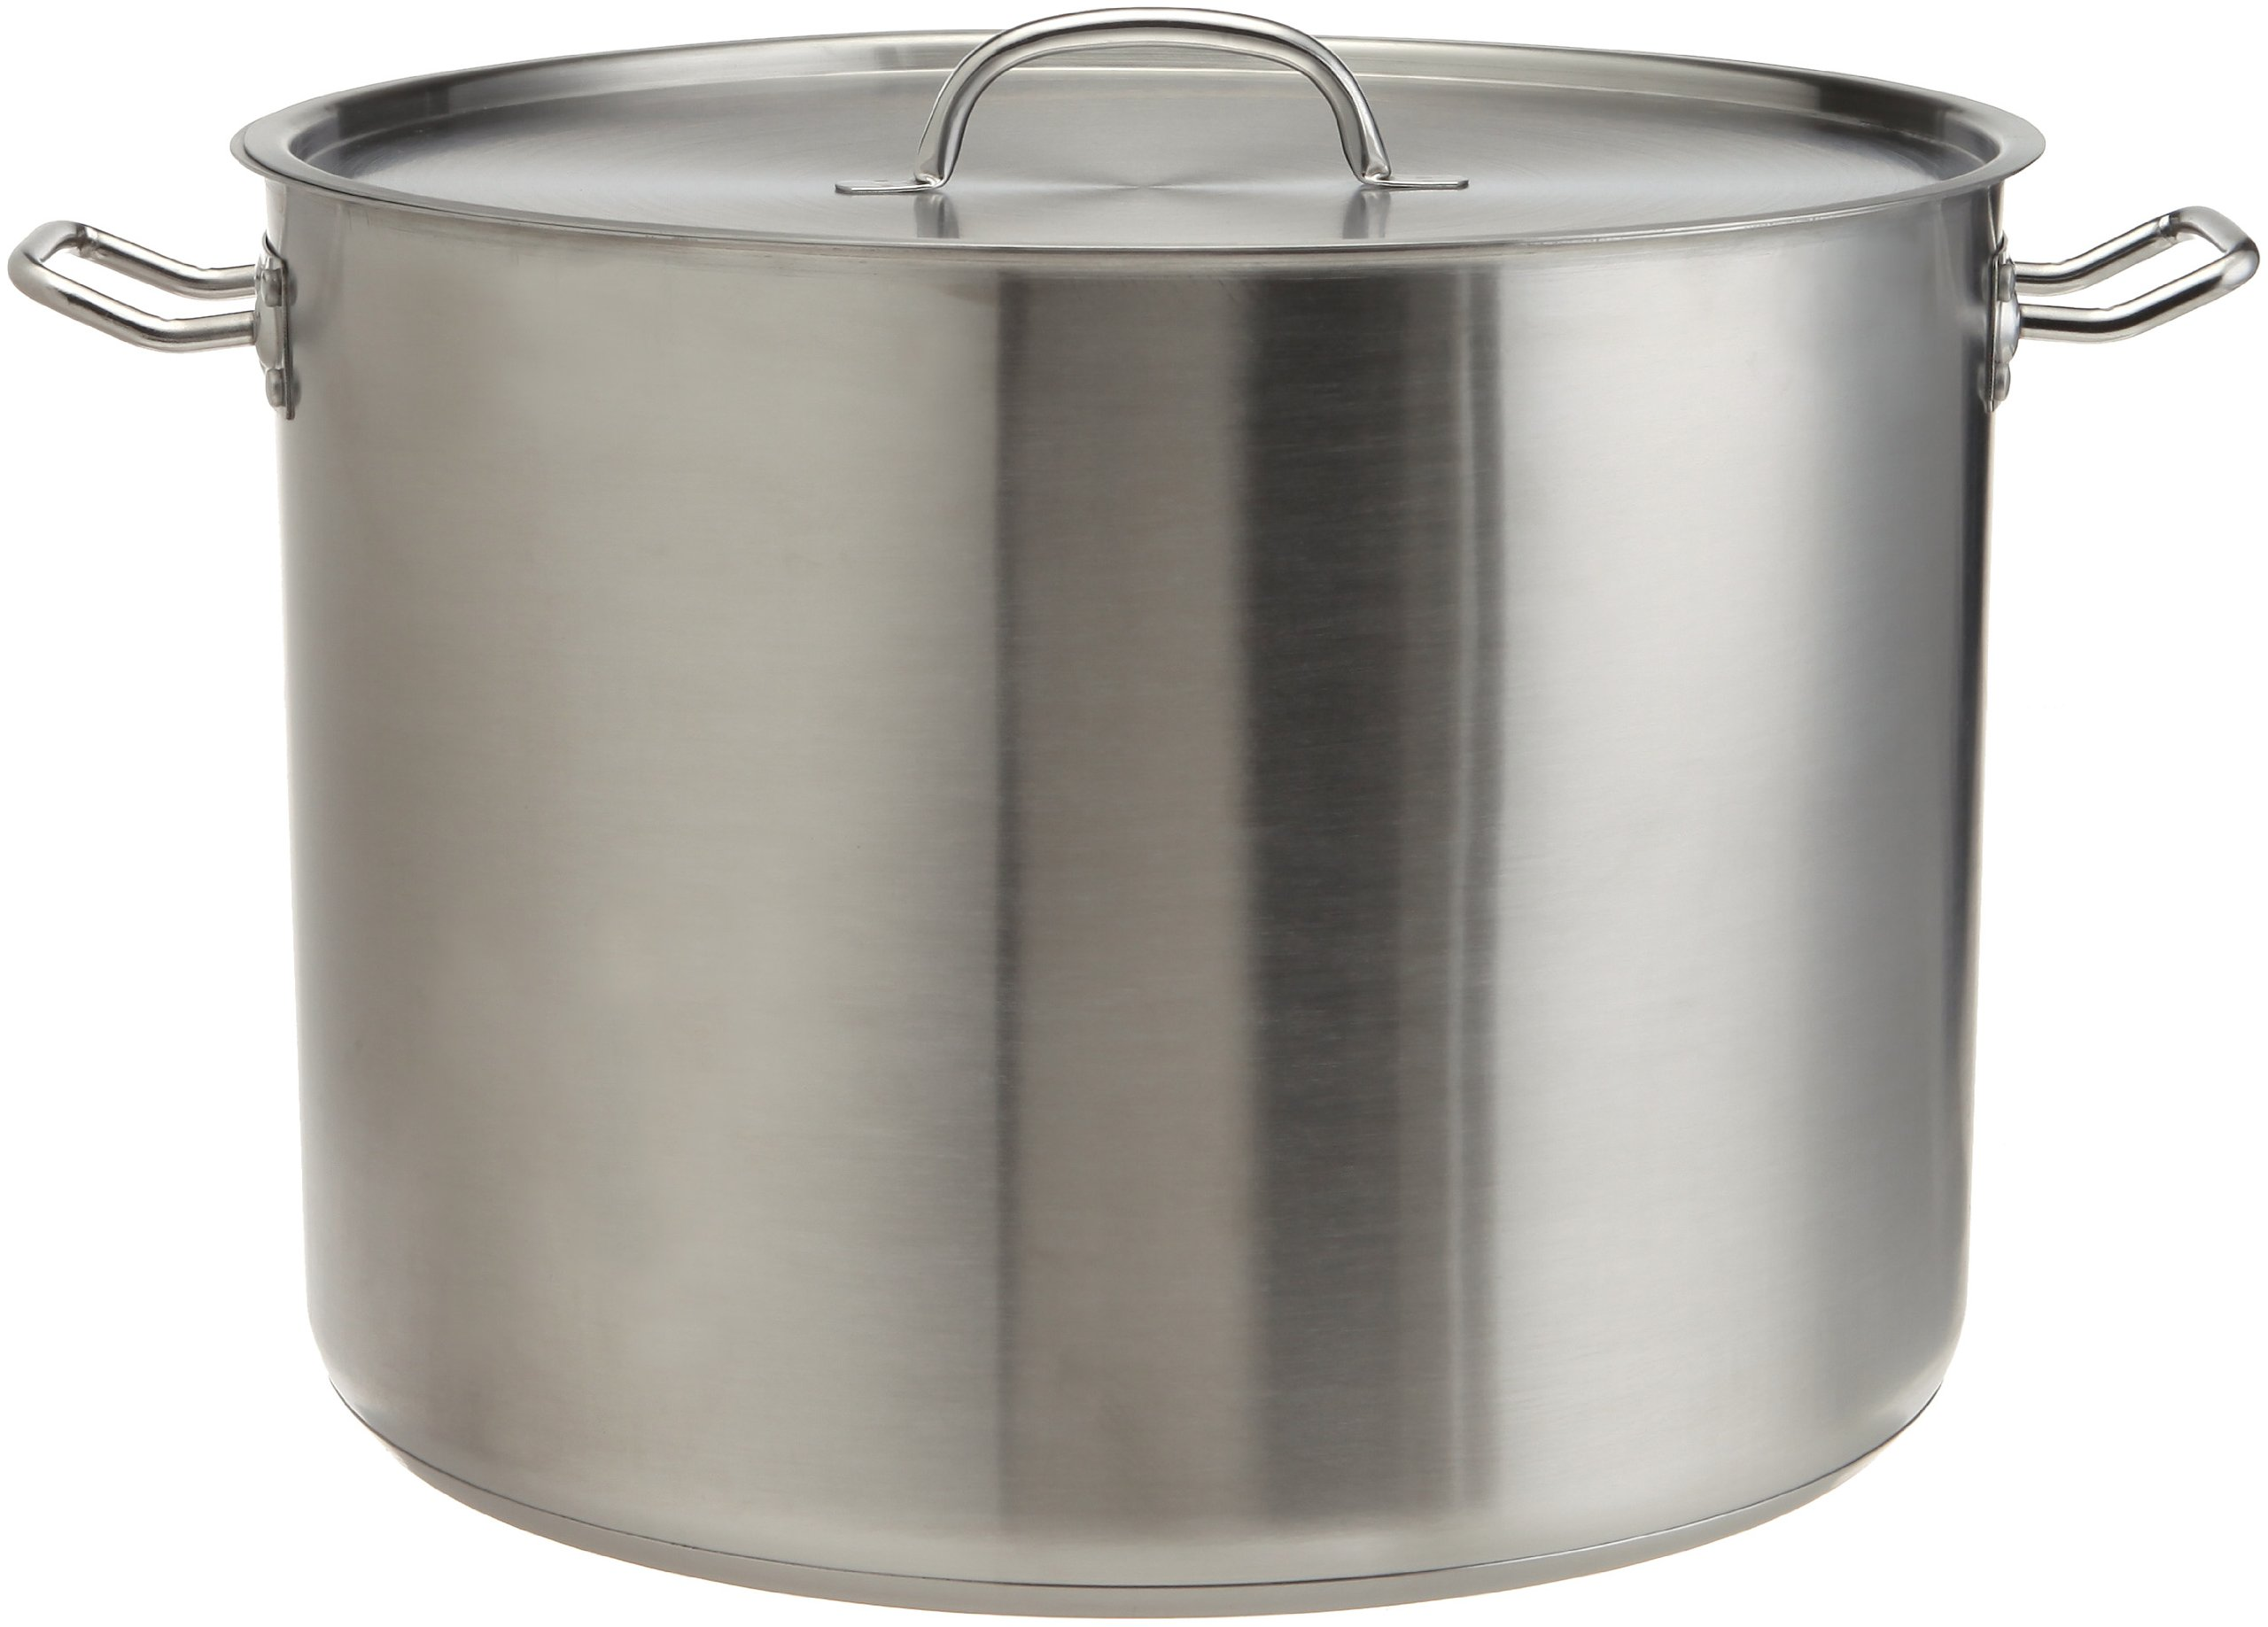 Prime Pacific Heavy Duty Stainless Steel Stock Pot with Lid, 35-Quart by Prime Pacific